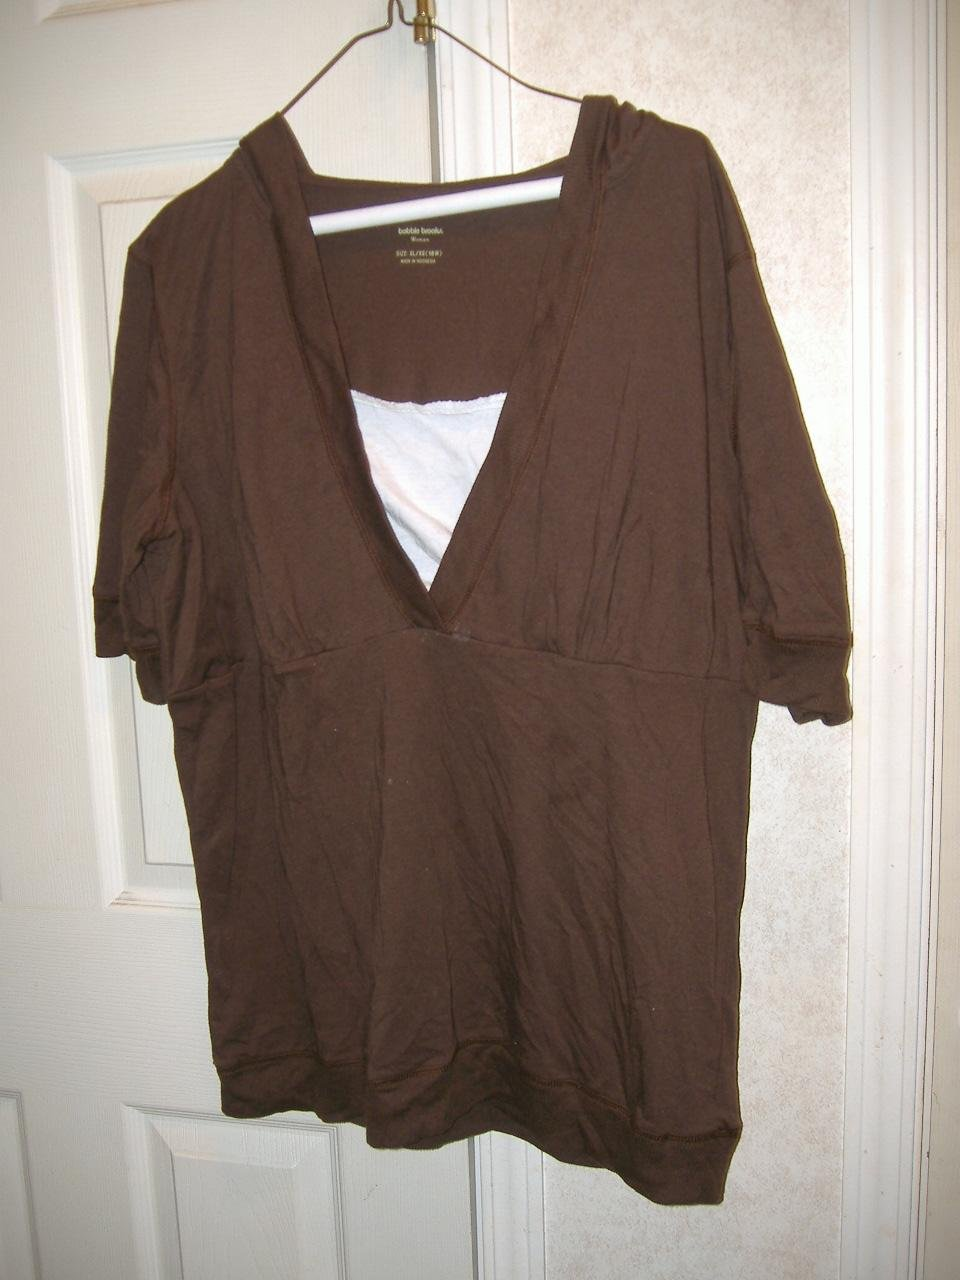 Woman Hooded Top By Bobbie Brooks   Size XL